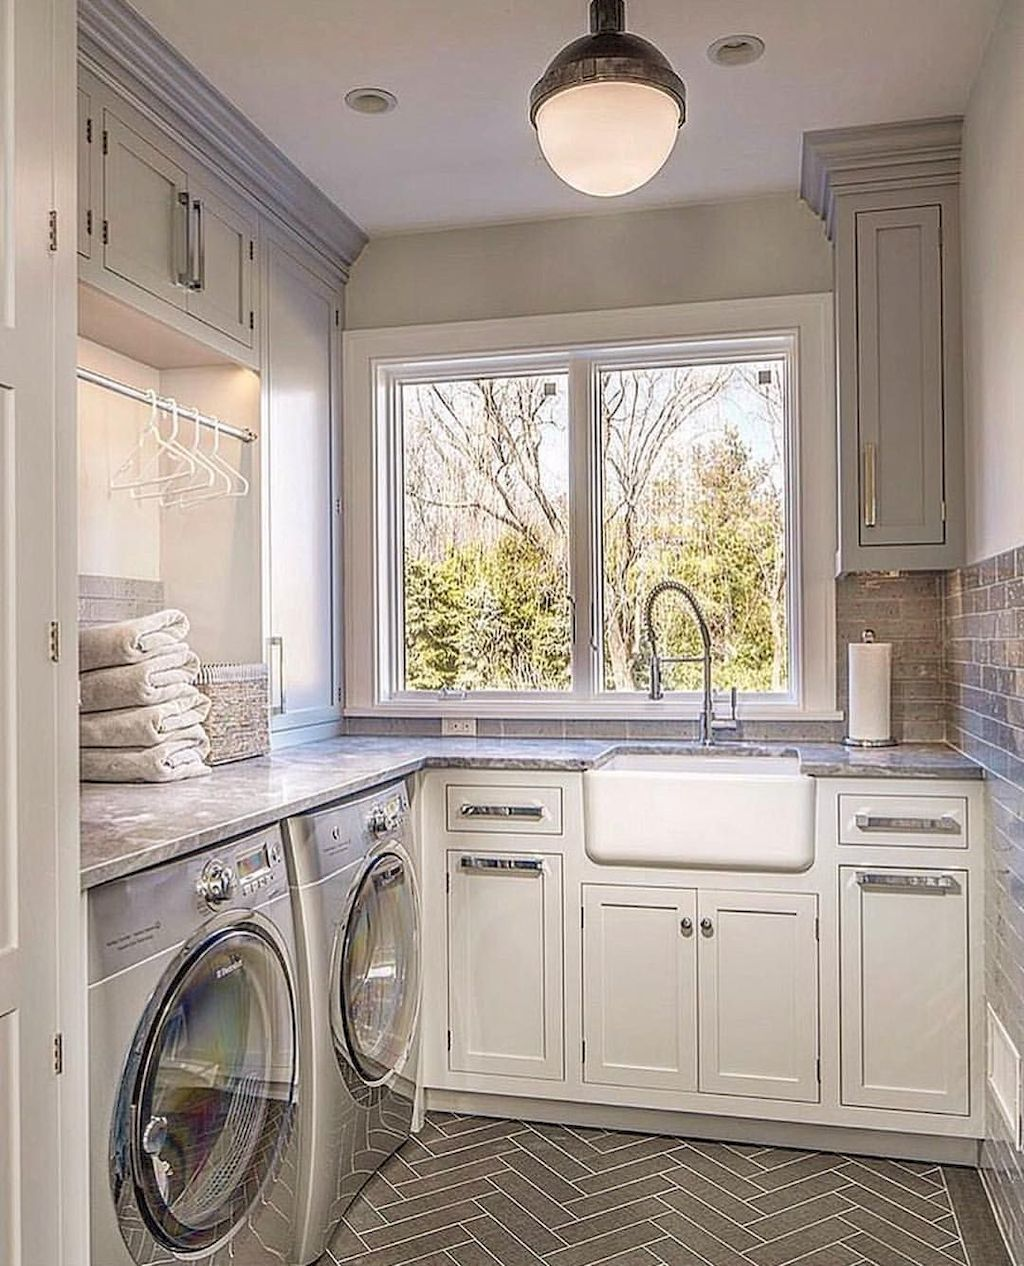 55 Modern Farmhouse Laundry Room Ideas images